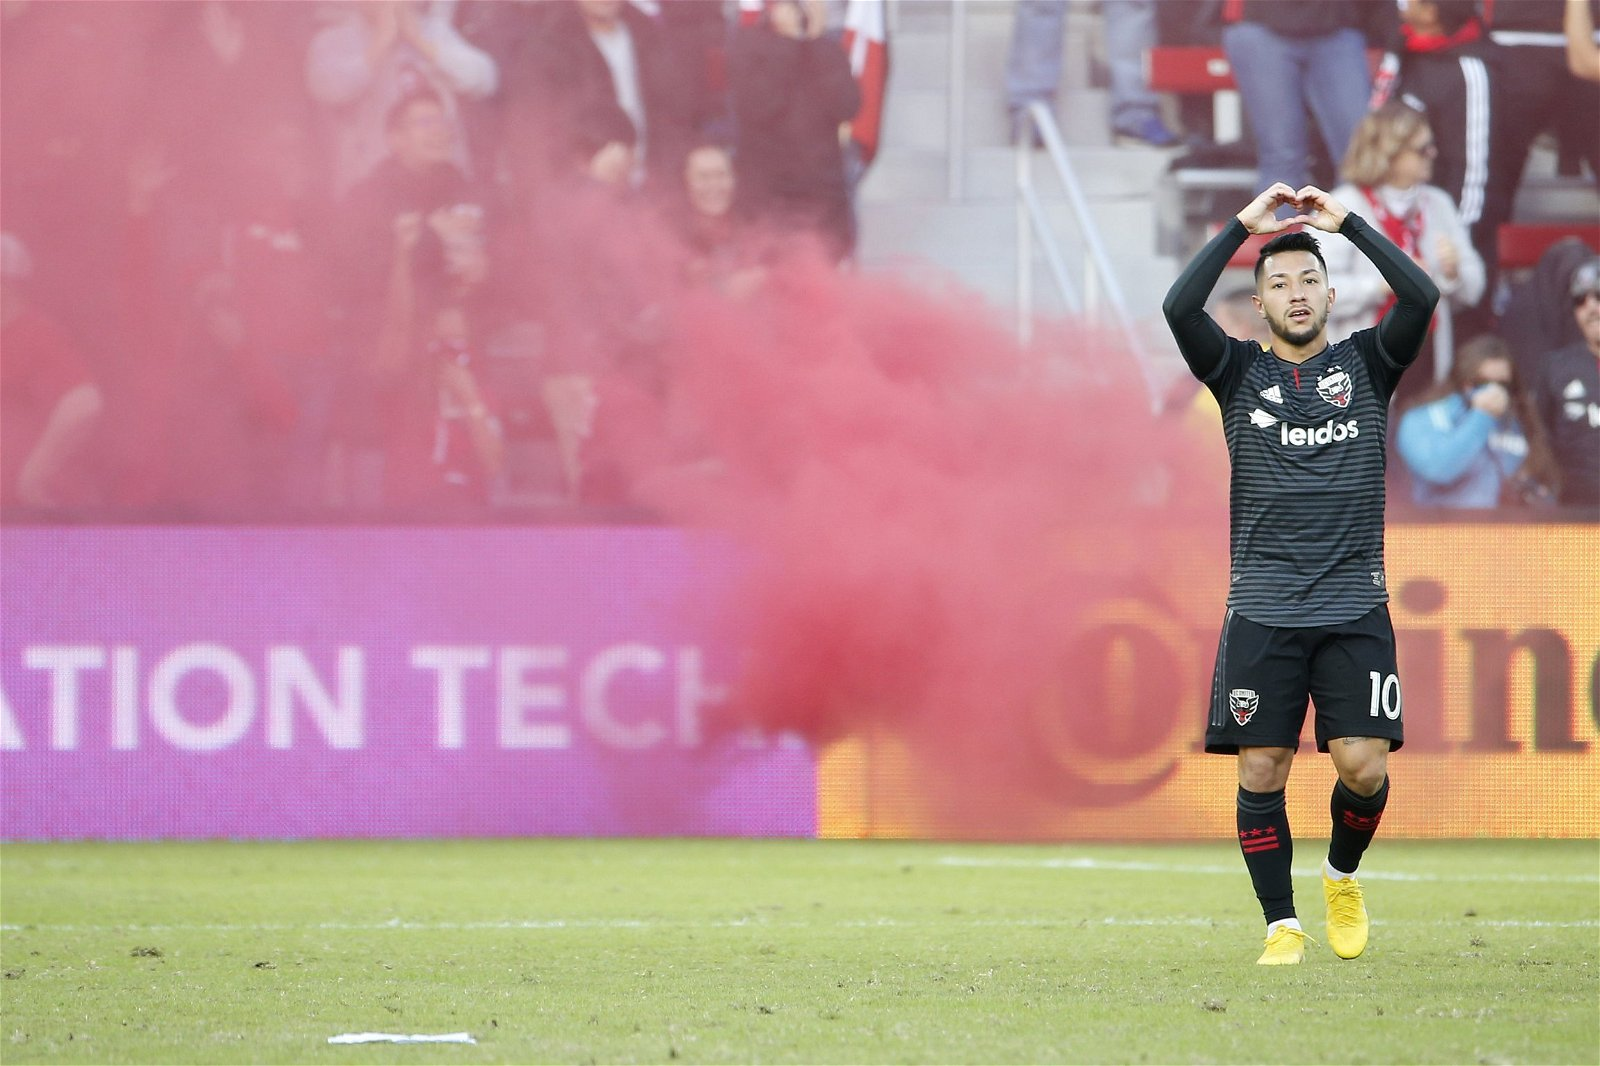 D.C. United midfielder Luciano Acosta celebrates after scoring against New York City FC